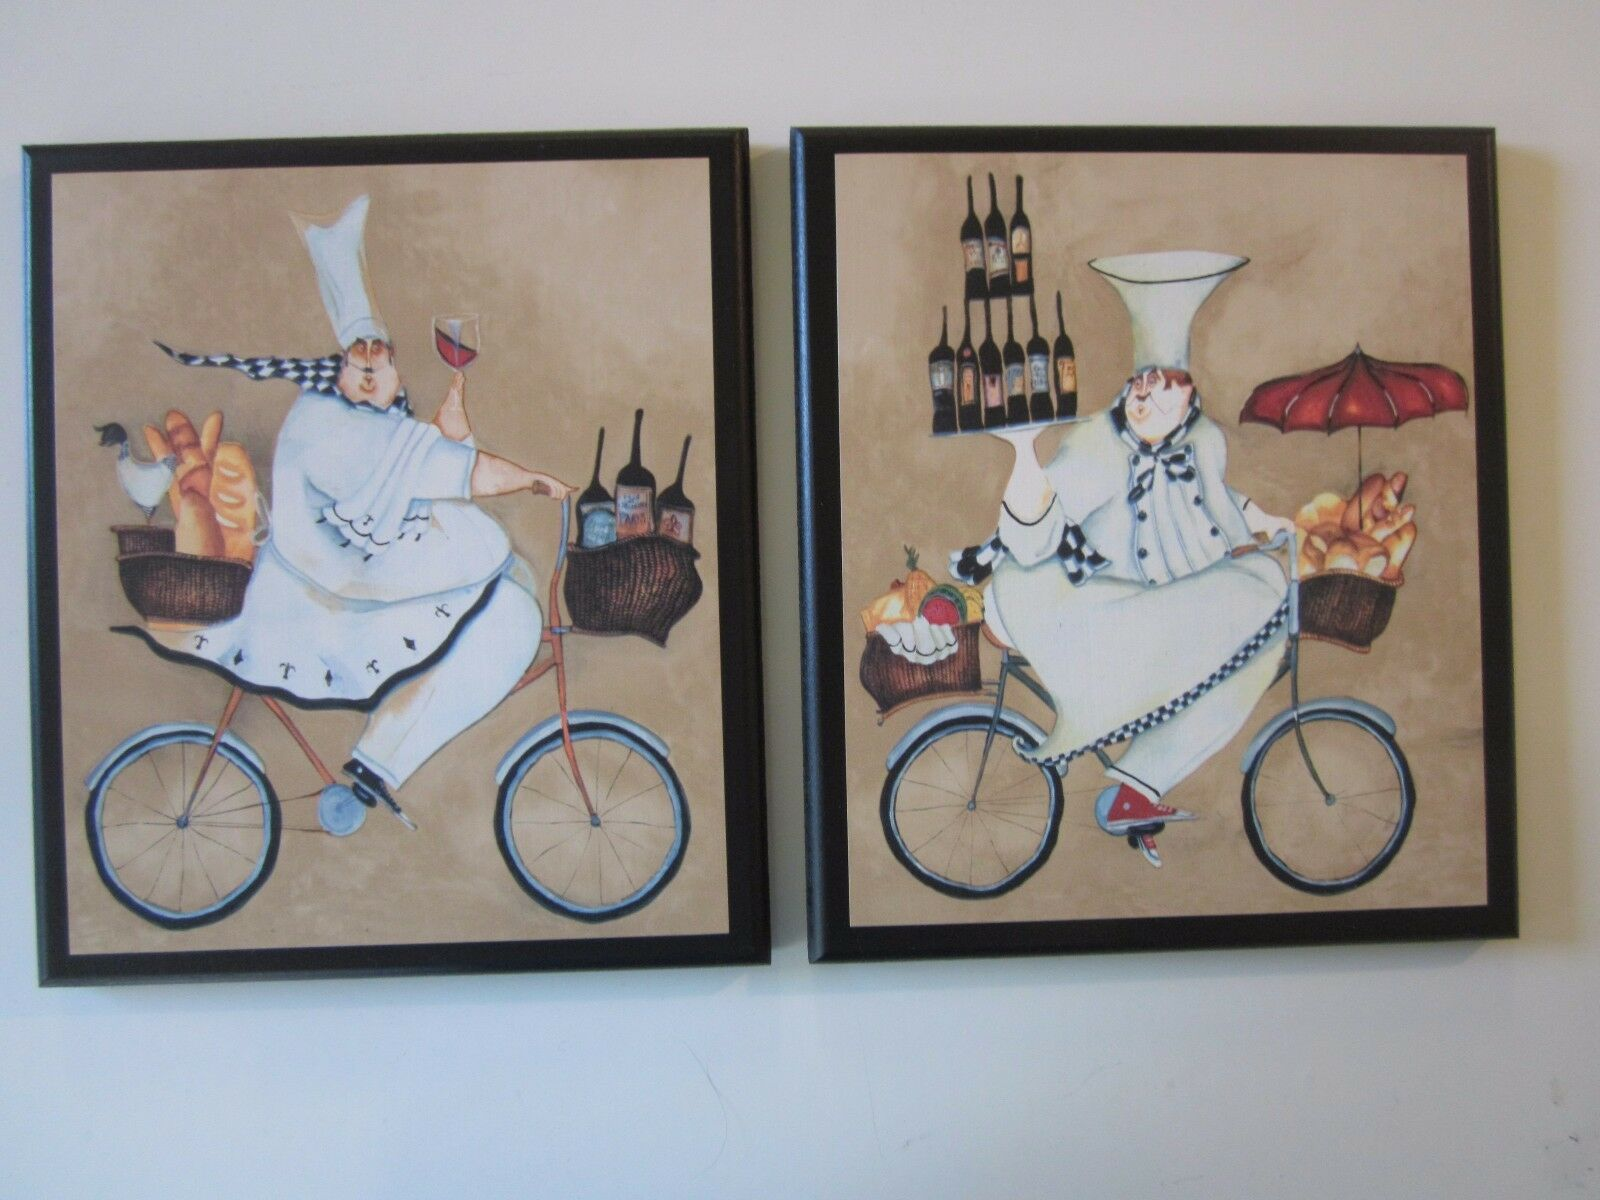 Chefs Kitchen Wall Decor Signs Fat Chef on Bicycles 2